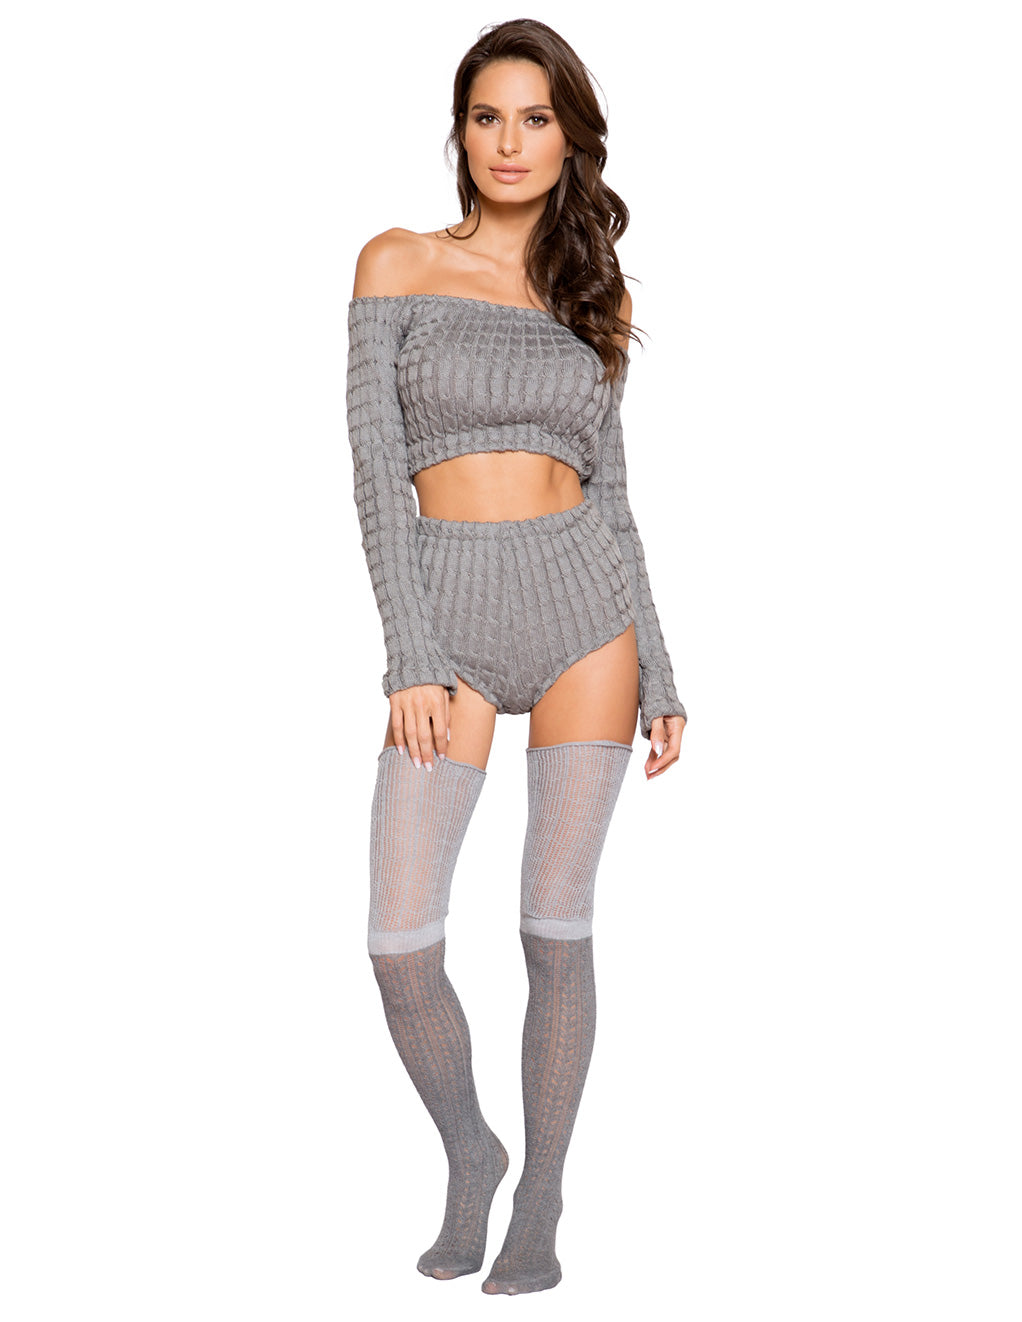 Cozy And Comfy Pajama Short Set By Roma Costume Front